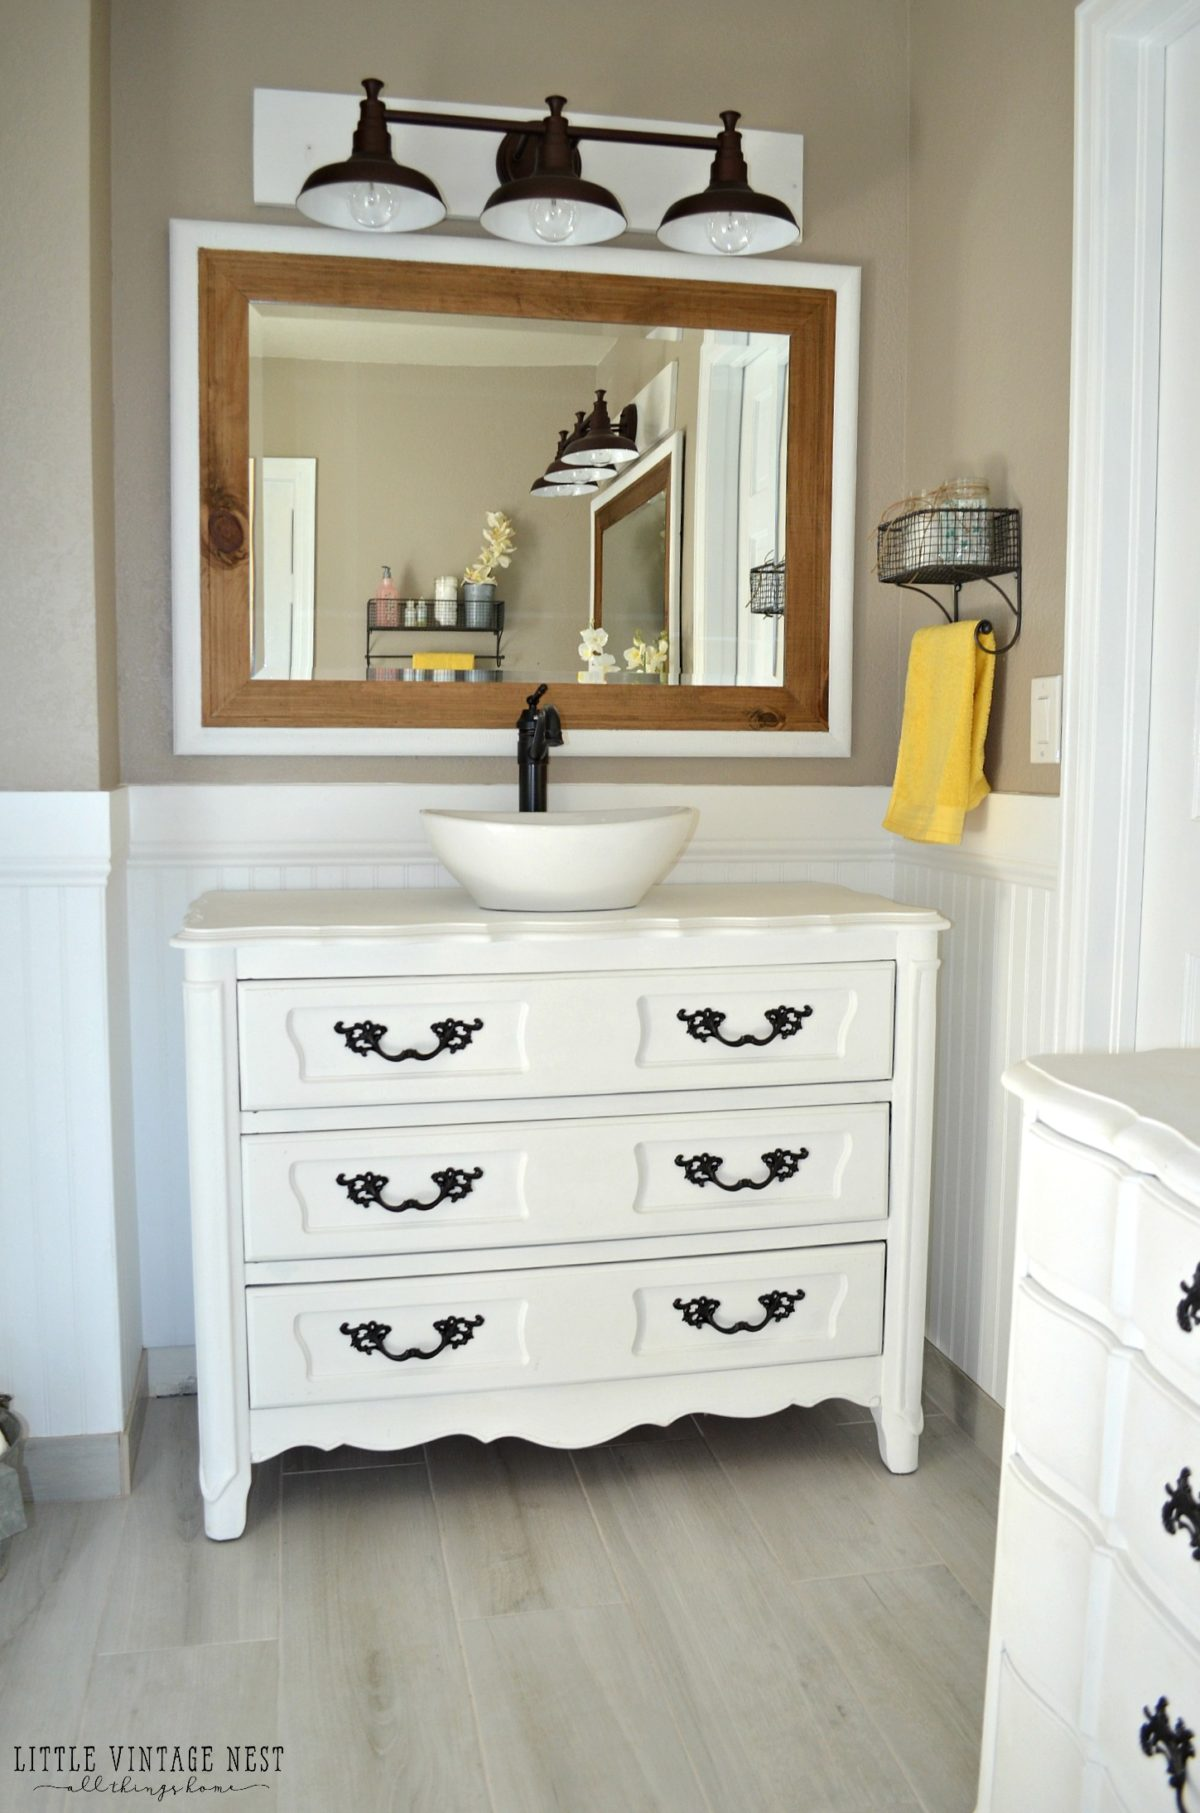 Step by step tutorial to turn an old dresser into bathroom vanity - Old Dresser Turned Bathroom Vanity Tutorial